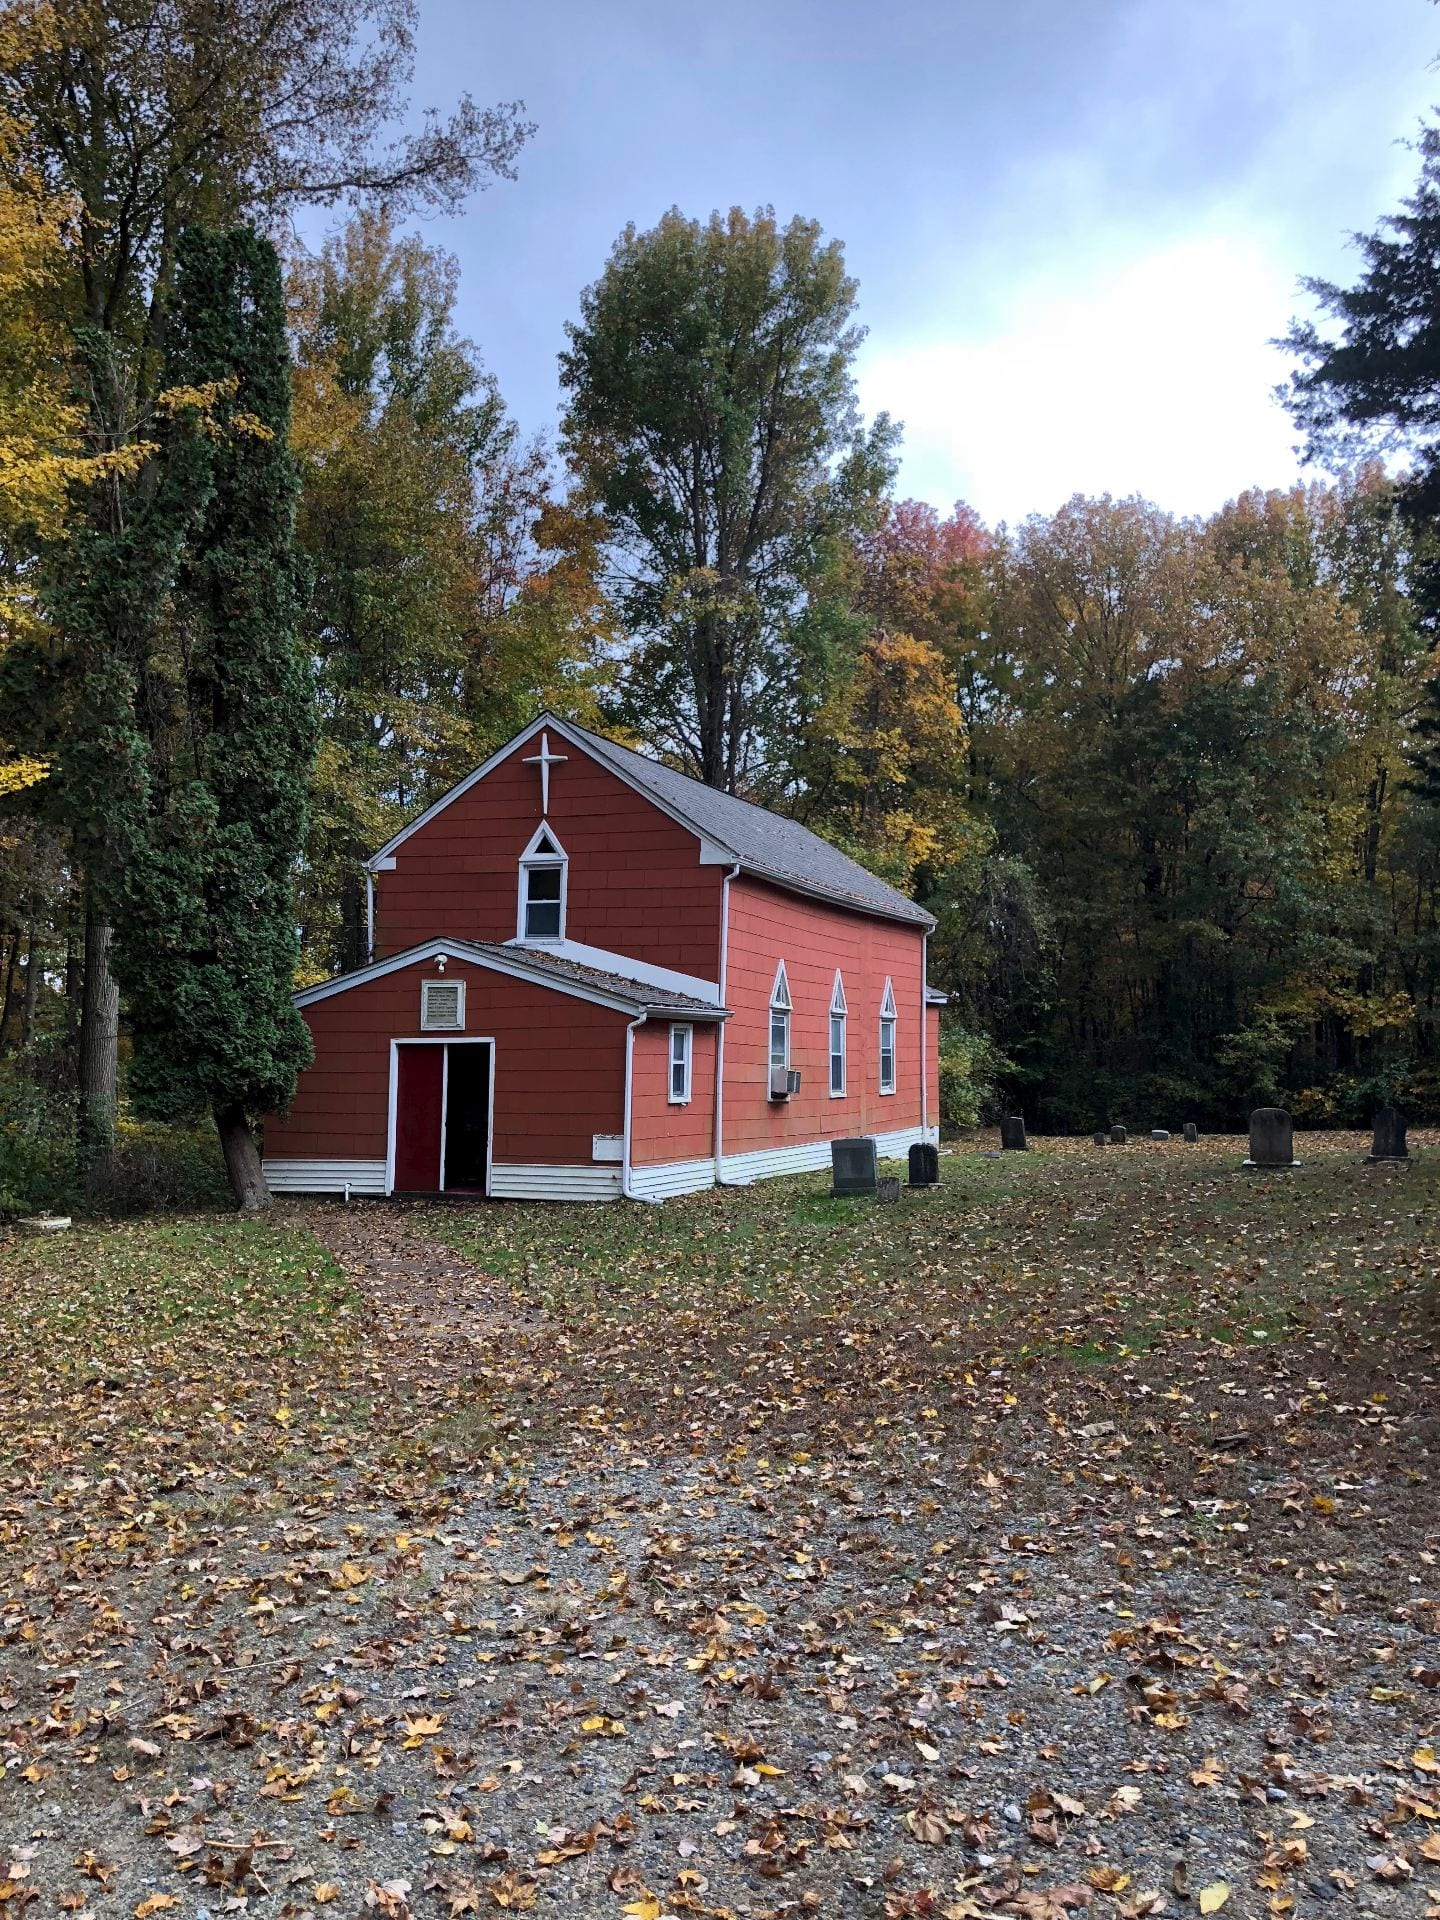 A red church with white trim. To the right of the church are a series of gravestones. Tall trees just beginning to turn for autumn surround the area.